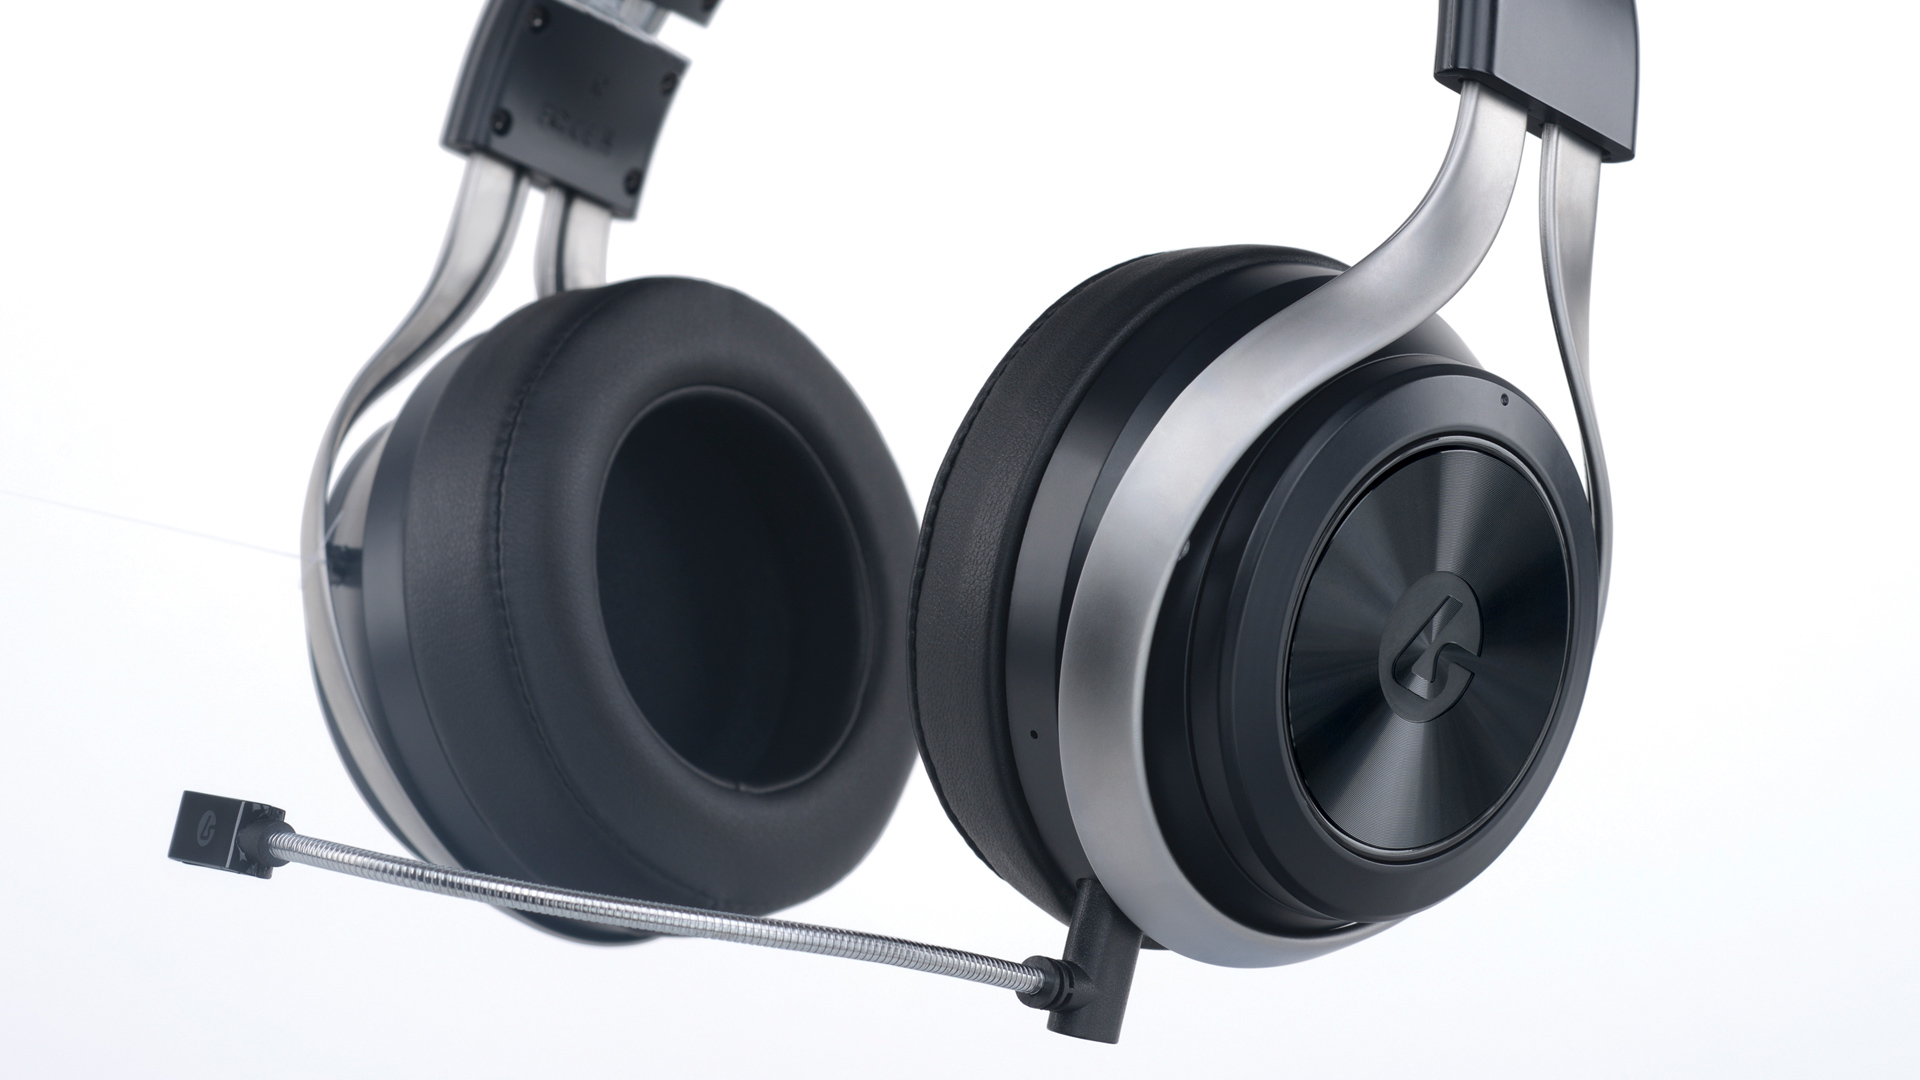 Xbox 360 Gaming Headset >> Review: Lucid Sound LS30 Gaming Headset